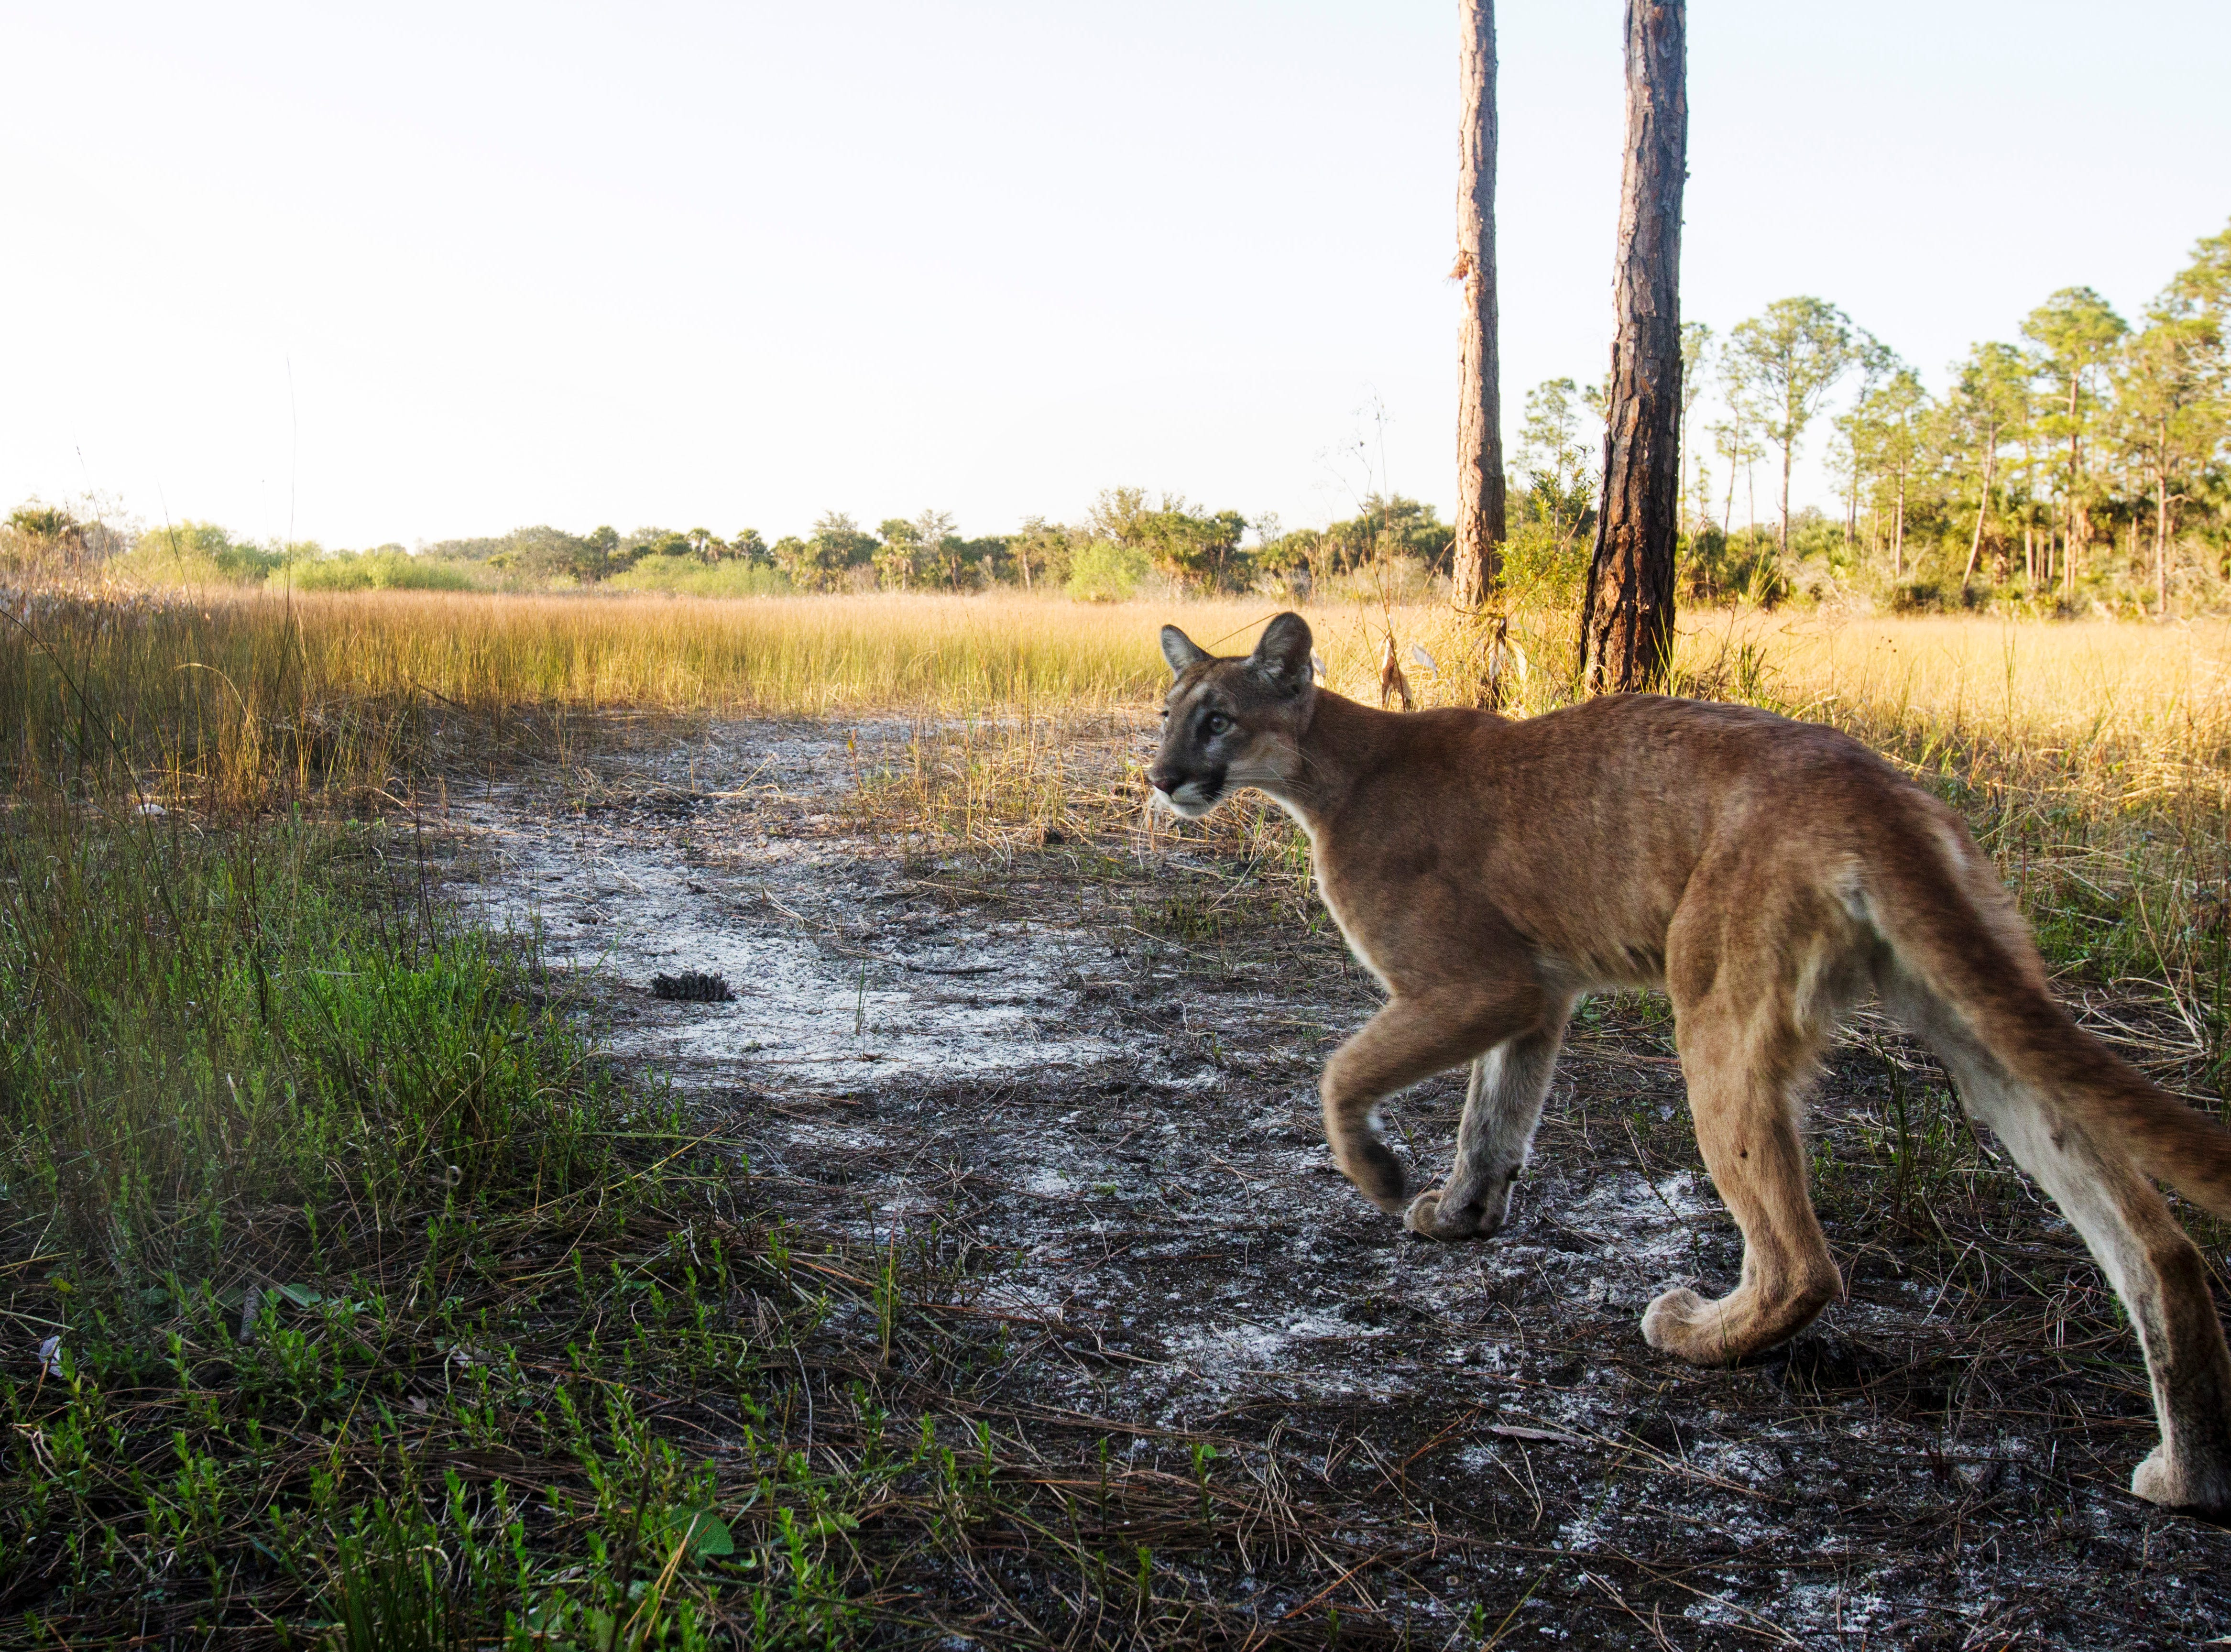 A young Florida panther trips a camera trap. For over a year News-Press photographer Andrew West has kept a  camera trap set up in the Corkscrew Regional Ecosystem Watershed. These are some of his favorite images. They include Florida panthers, young and old, black bear, white-tailed deer, bobcat, wild turkey, rabbits, a red shouldered hawk, a turkey vulture, hikers, and pets which include dogs and horses. ettle. This one is old and on its last legs. According to FWC biologist Dave Onorato: That's a young panther, likely just about a year old and perhaps still traveling with Mom.  That panthers is in fine shape, good coat, etc.  This animal surviving to year 1 is already beating the odds (33% survival rate for kittens to year 1).  But, there is still the process of surviving to year 2 that will involve facing a lot of hurdles (dispersal, finding a home range, encountering competitors).